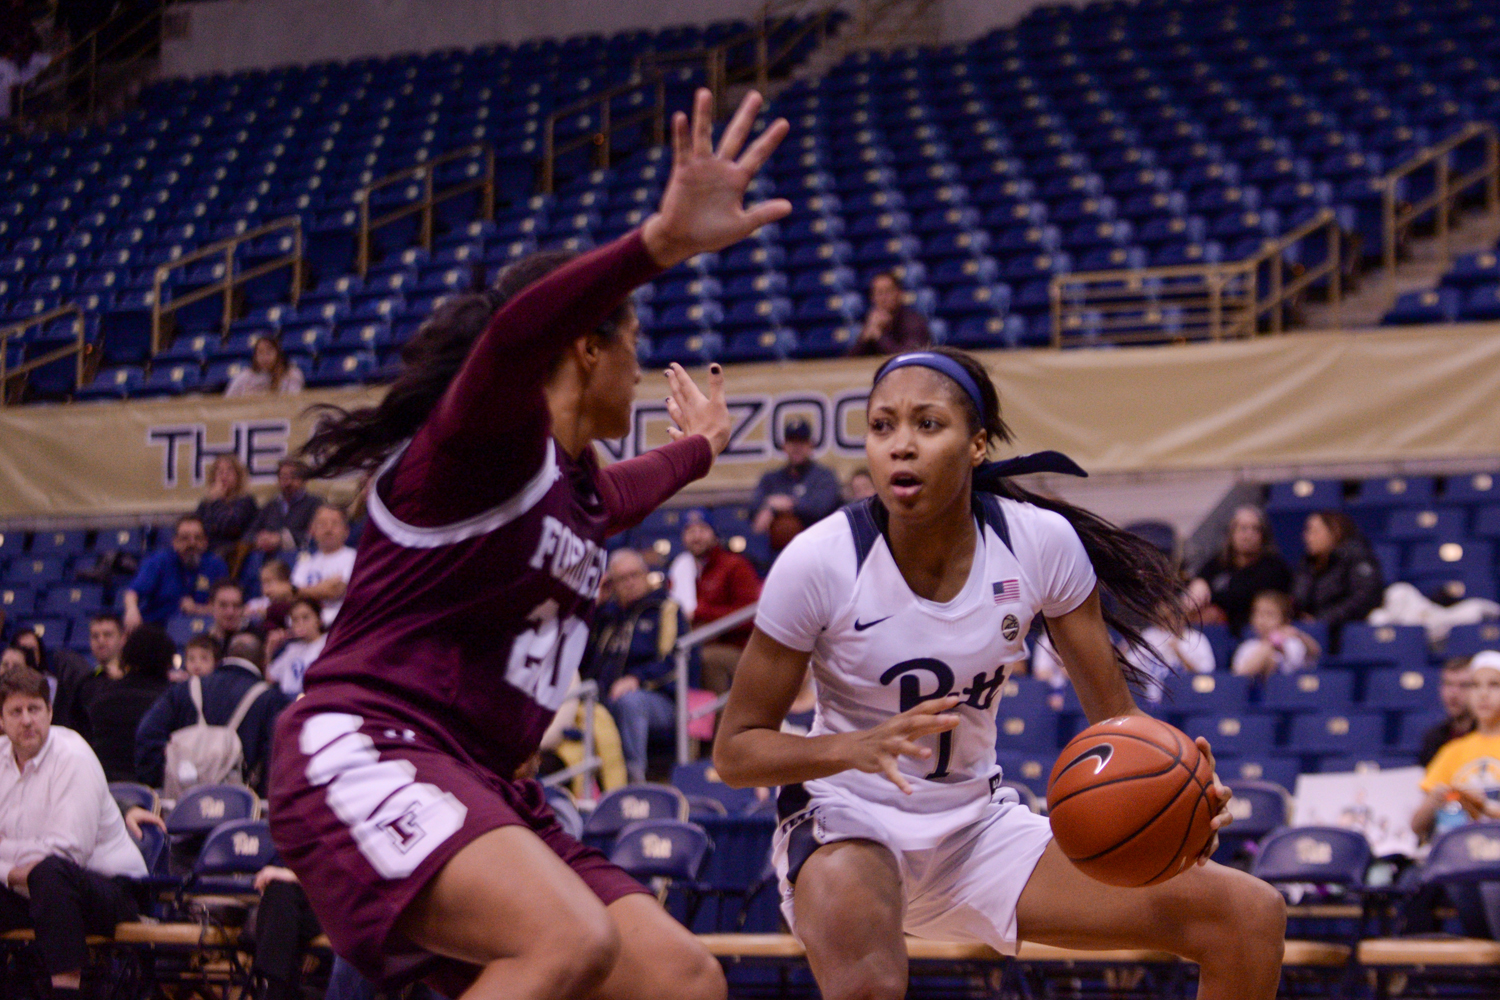 Senior forward Danielle Garven (1) drives the ball during Pitt's 65-62 victory over Fordham.